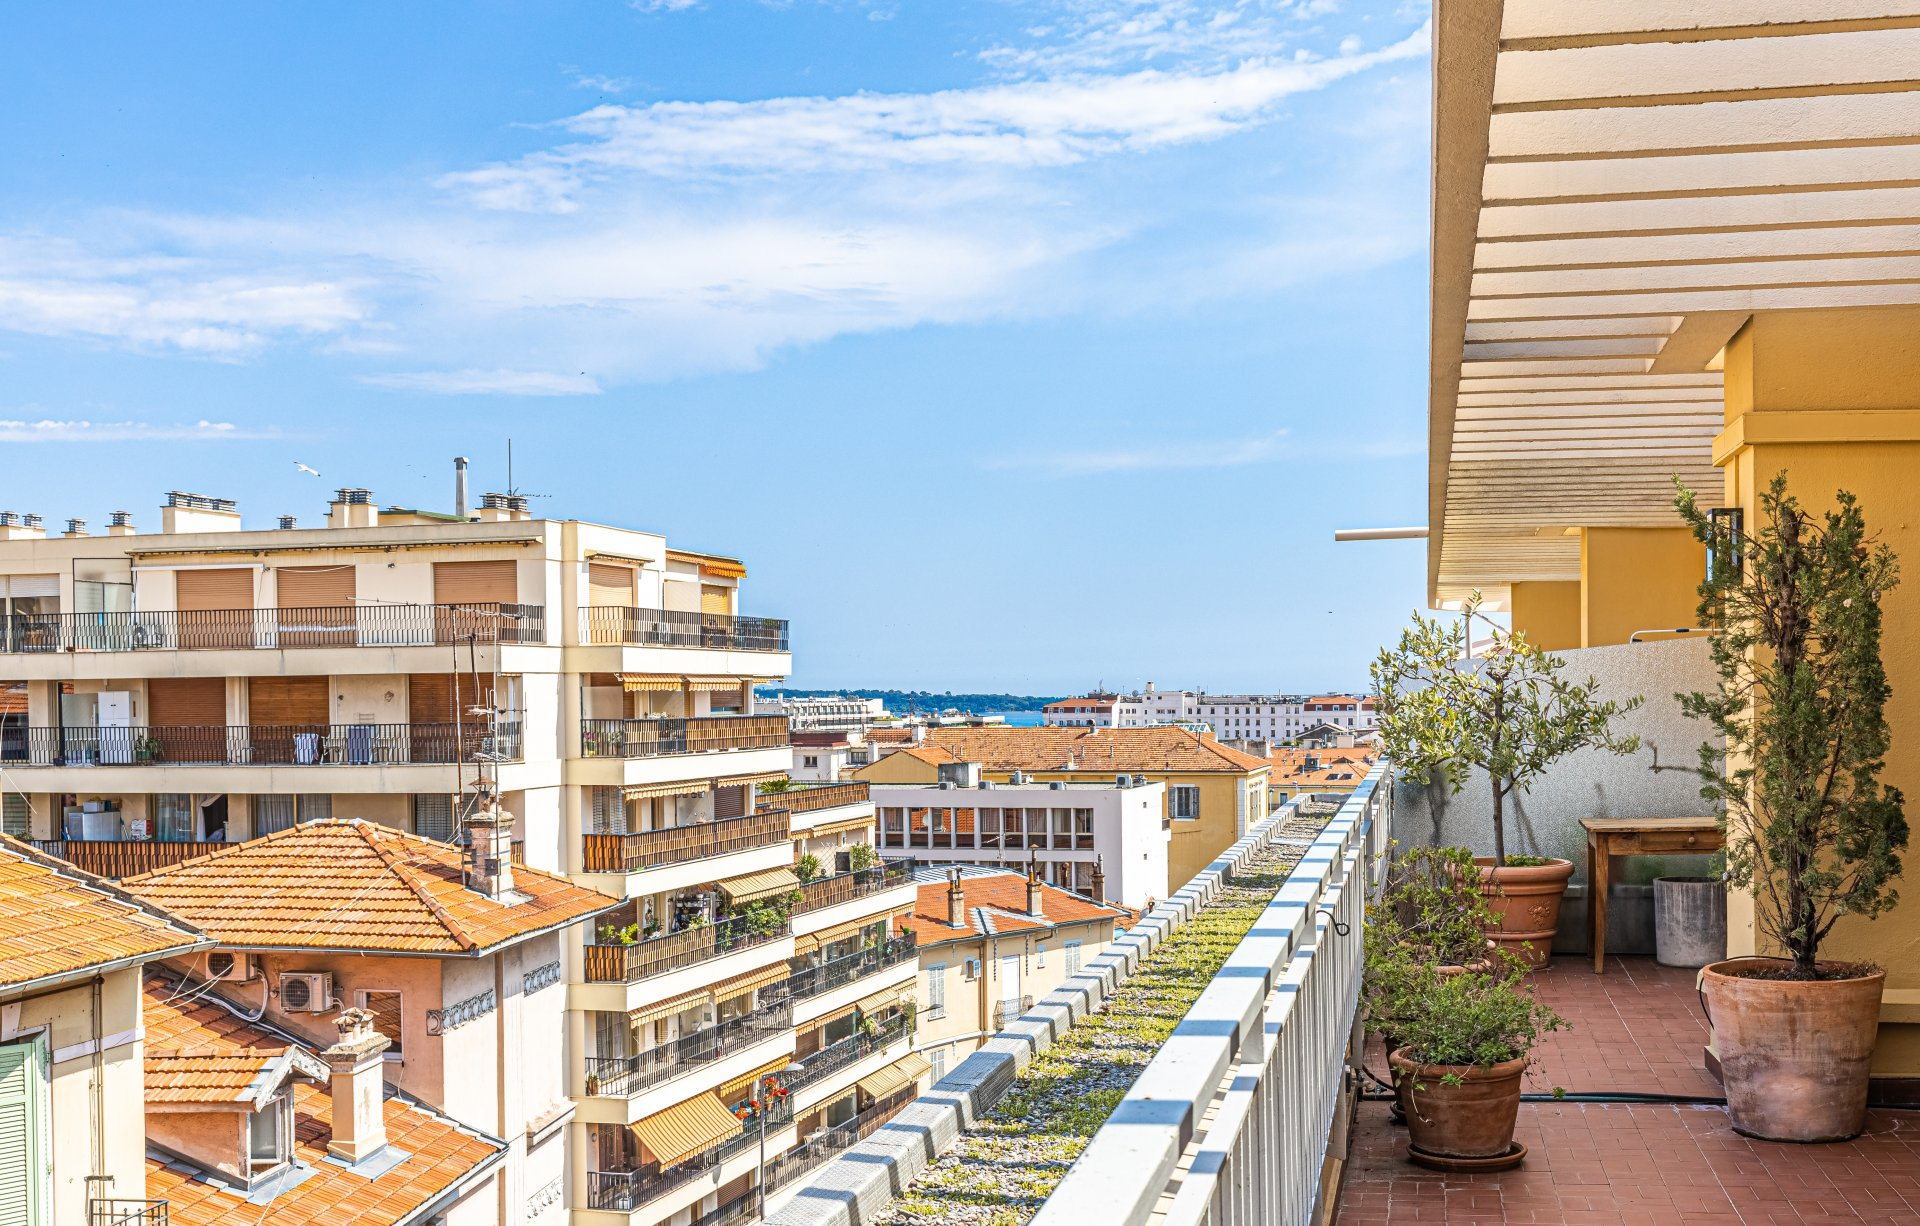 Nice 2-bed penthouse, huge terrace, jacuzzi, garage, cellar, nice view, centre of Cannes